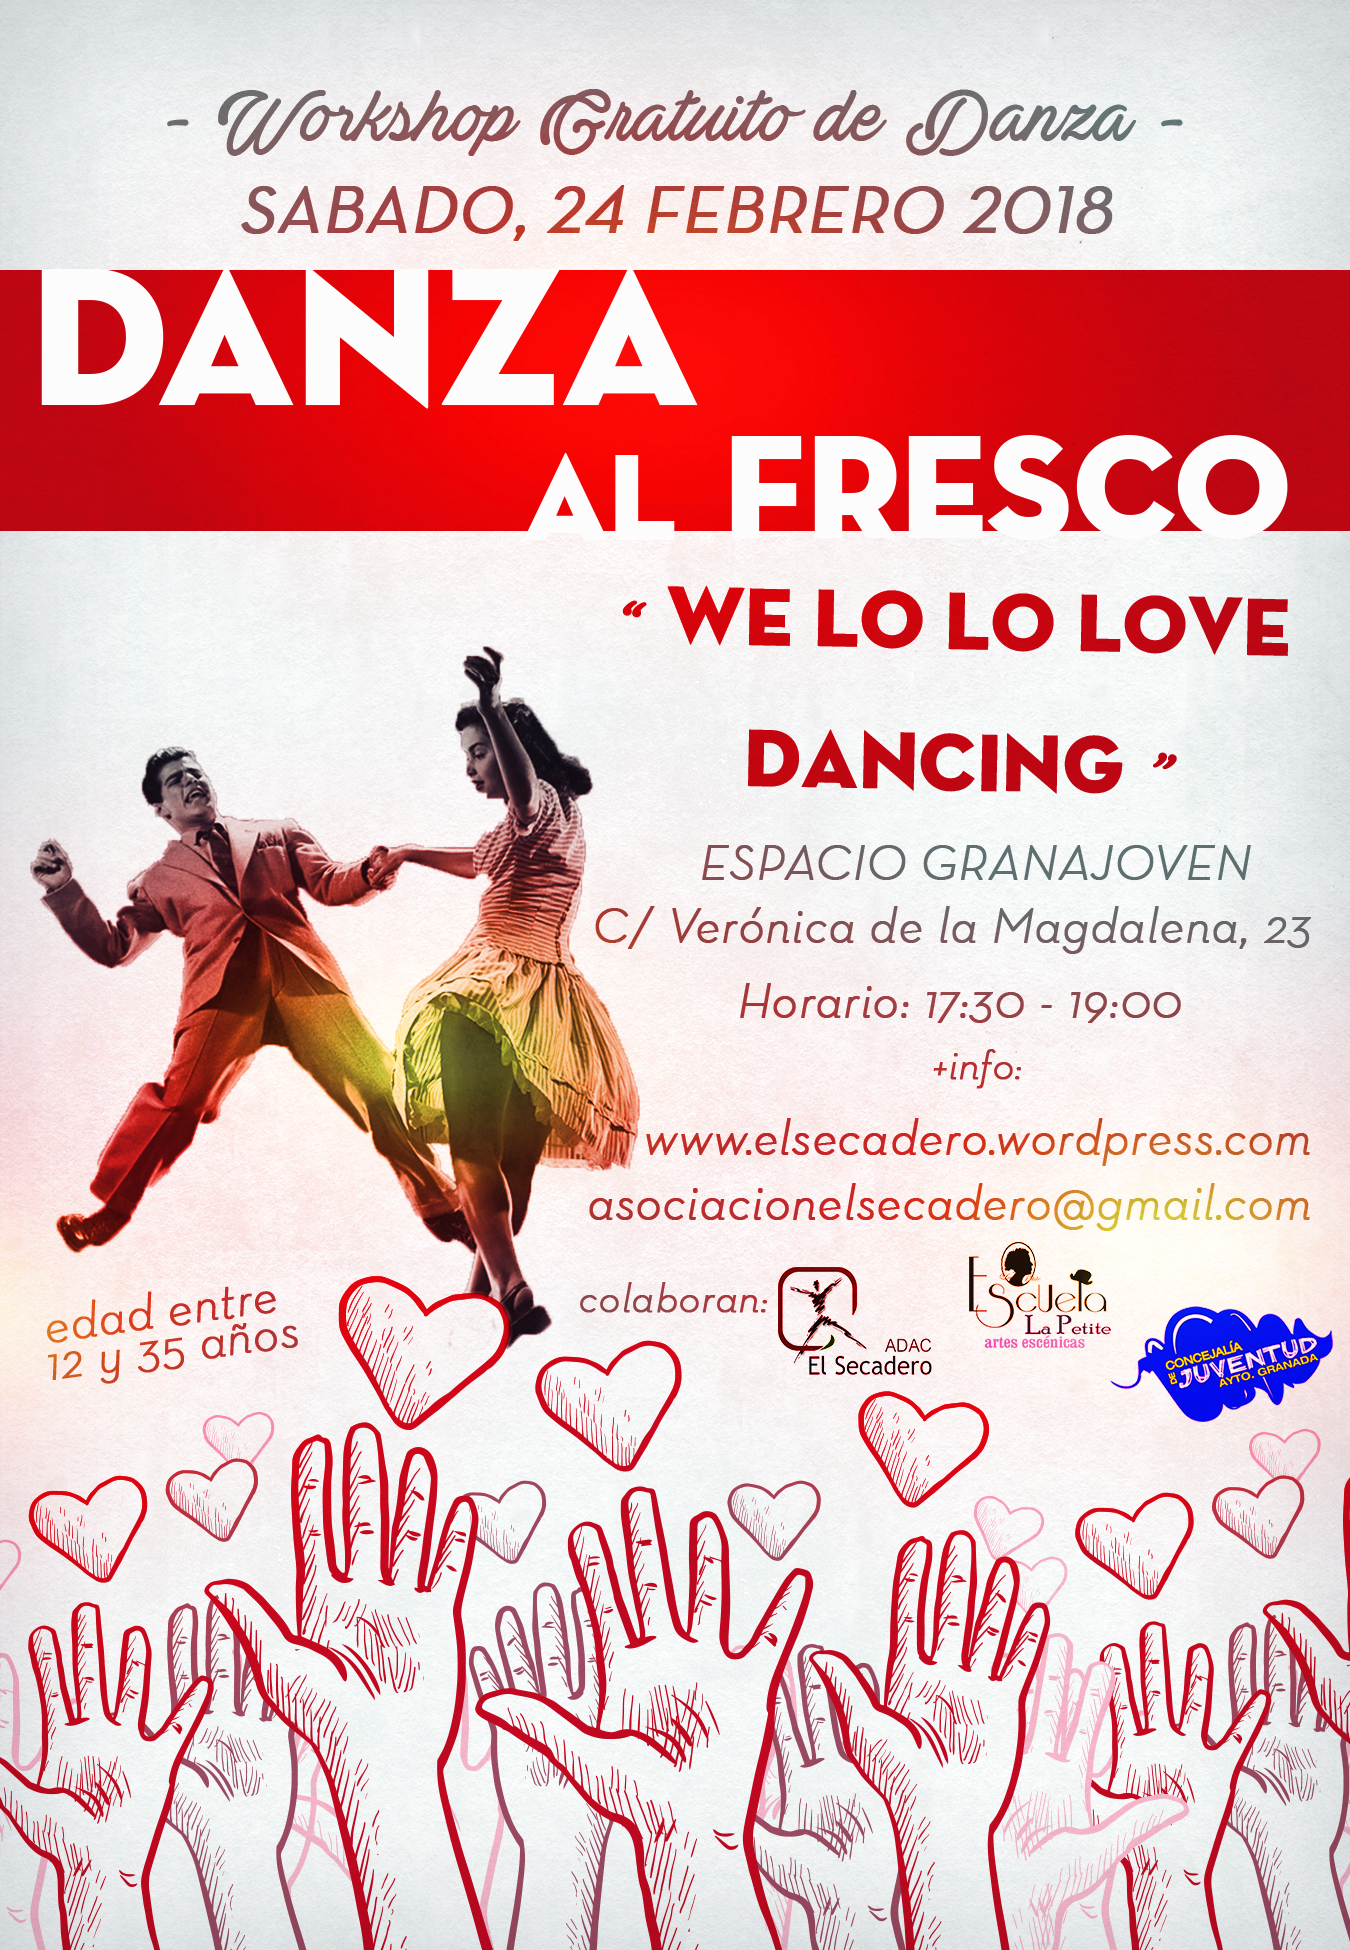 WORKSHOP gratuito de Danza